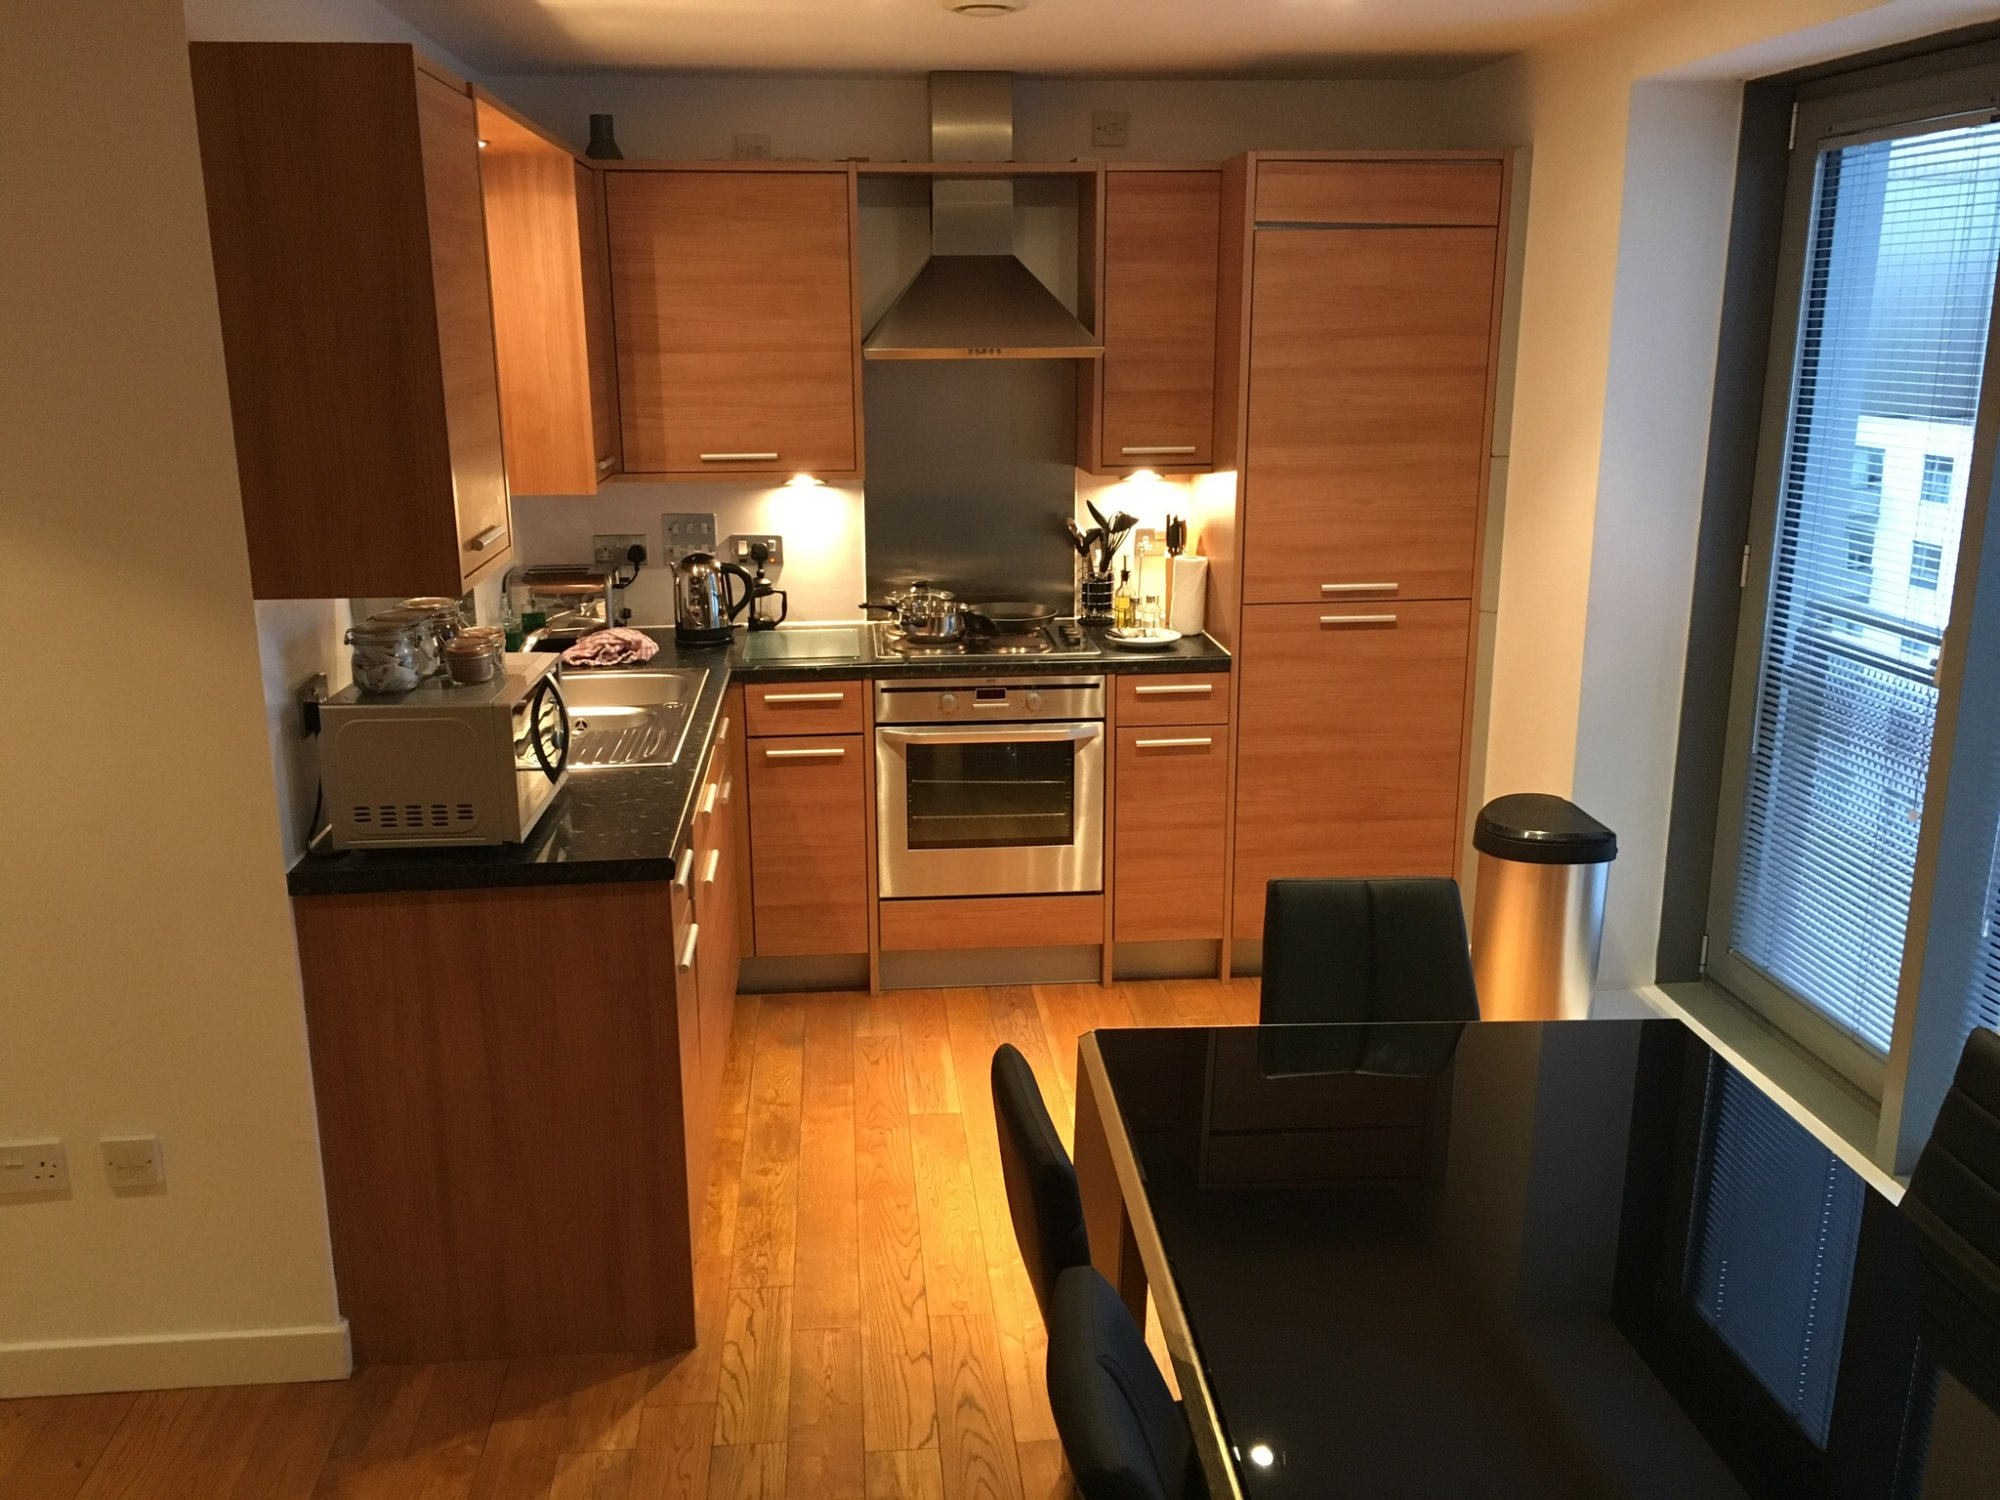 The b suites edinburgh updated 2016 apartment reviews for O kitchen edinburgh